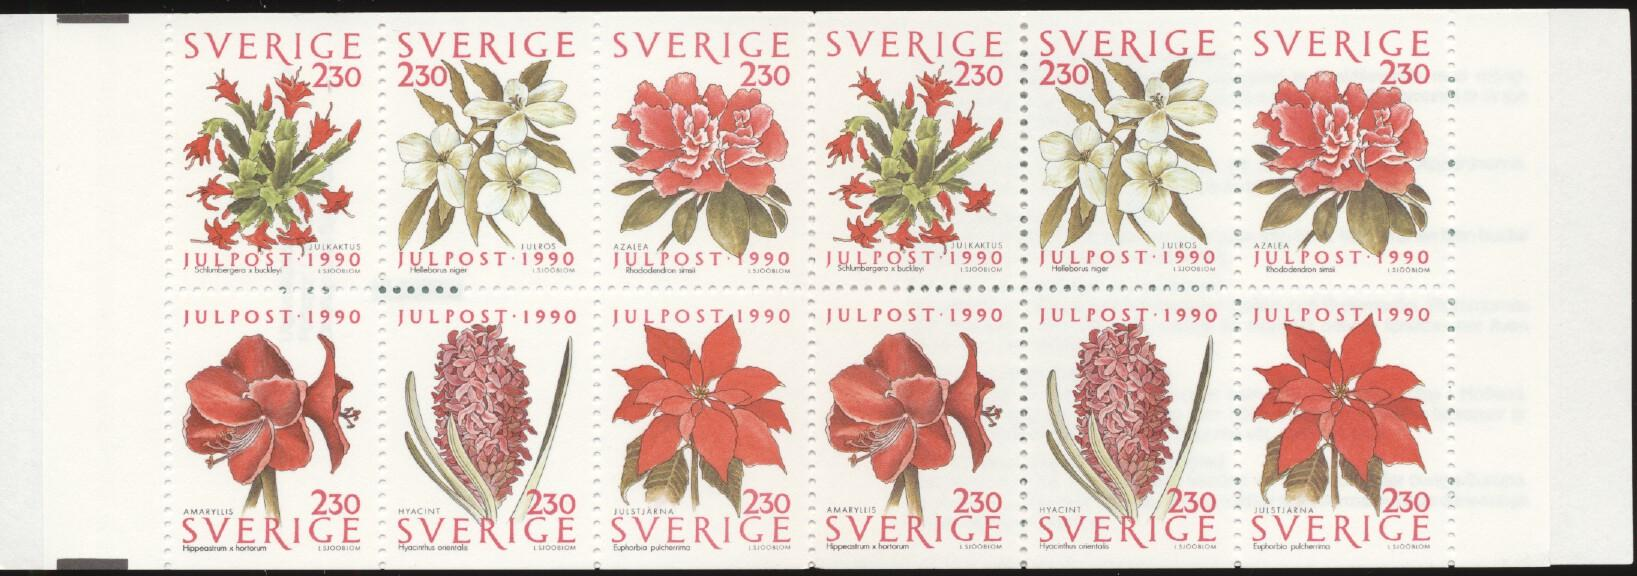 Stamps with Flowers from Sweden (image for product #250930)